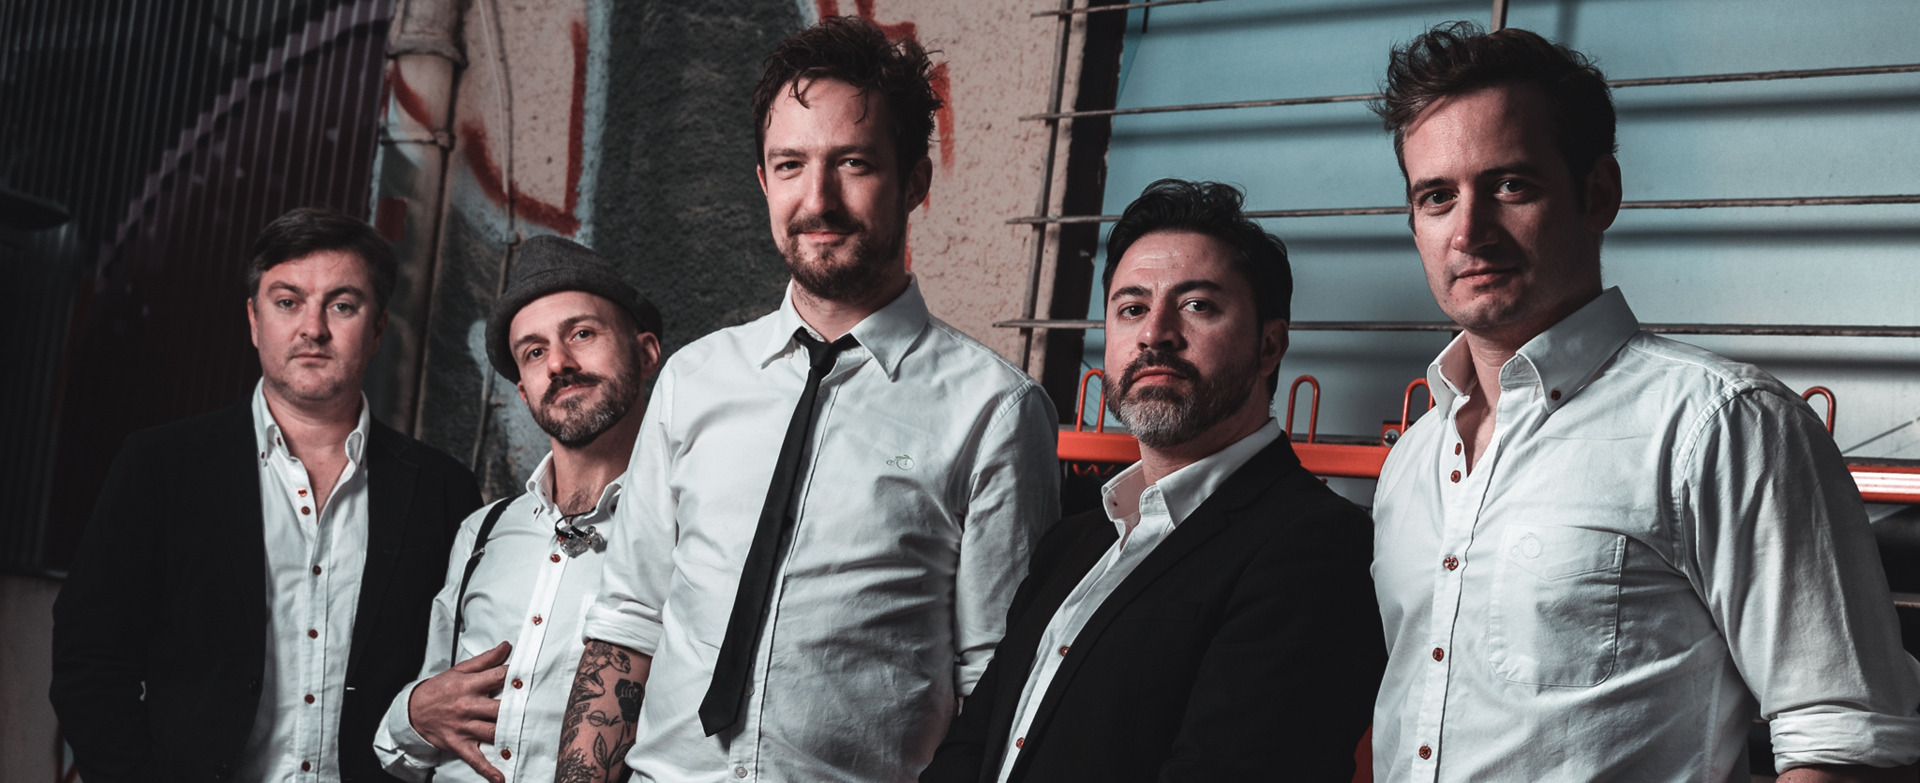 Frank Turner reunites with The Sleeping Souls for live stream show